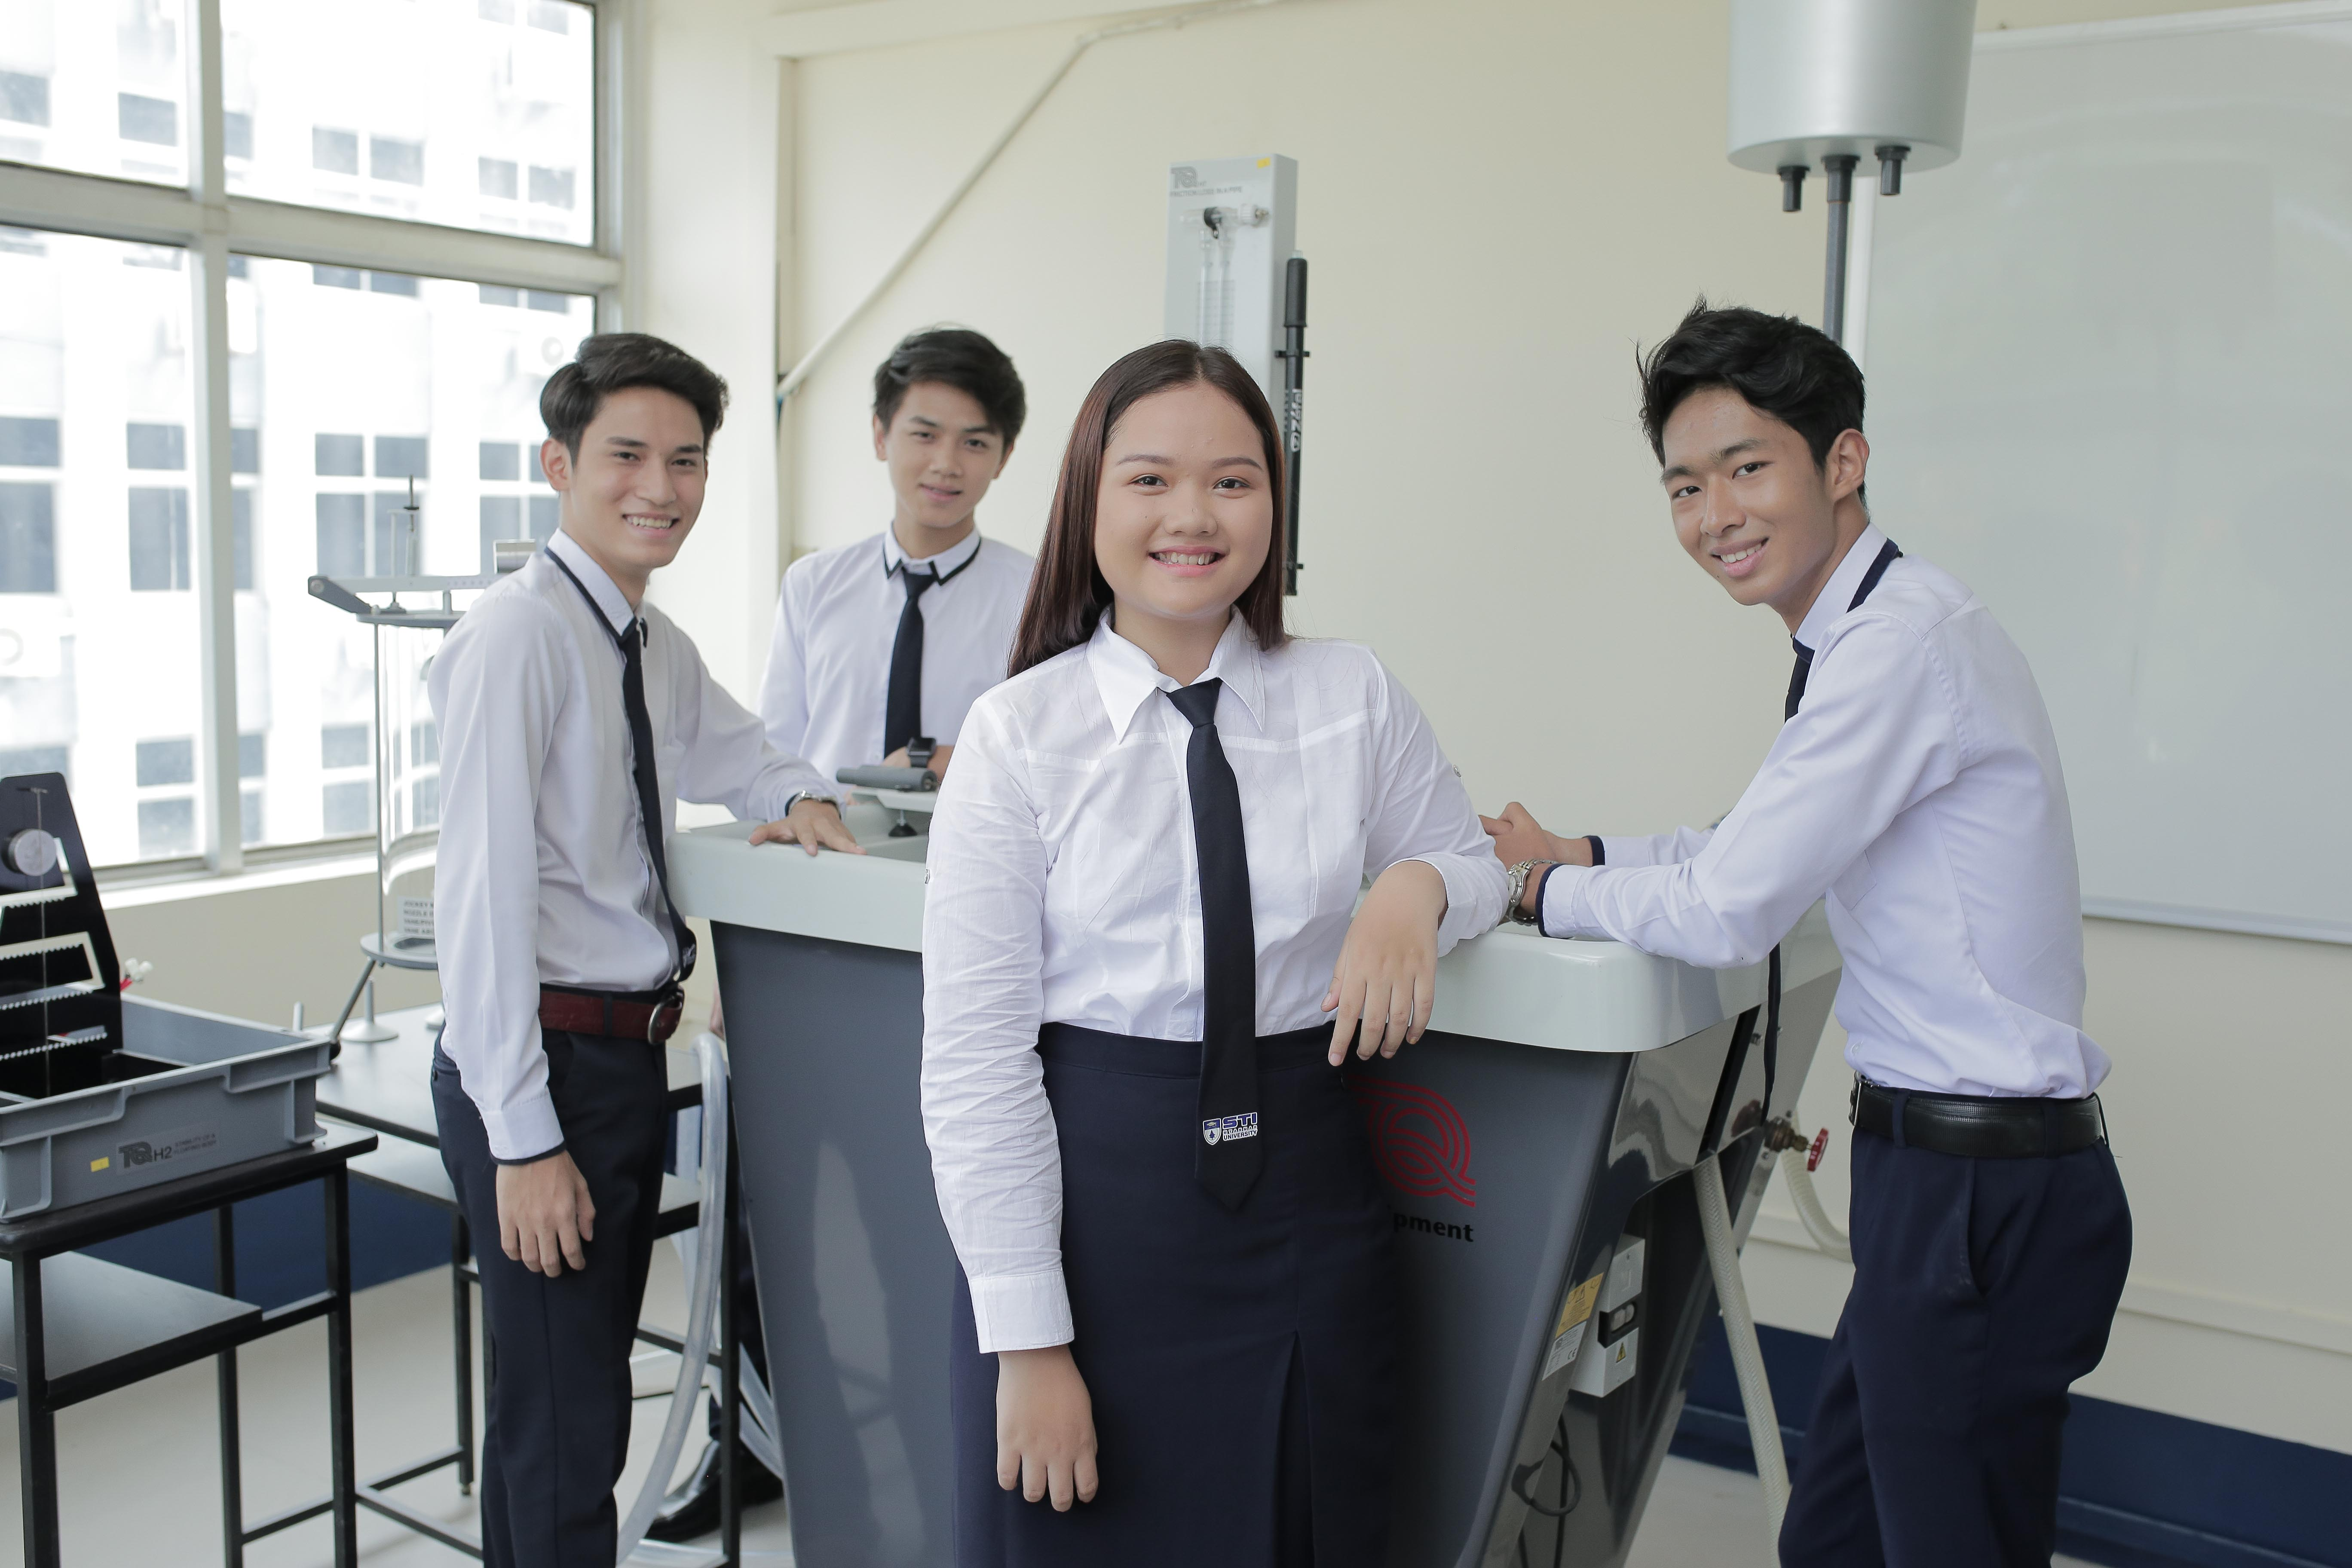 Advanced Diploma in Engineering (Architectural) in Myanmar